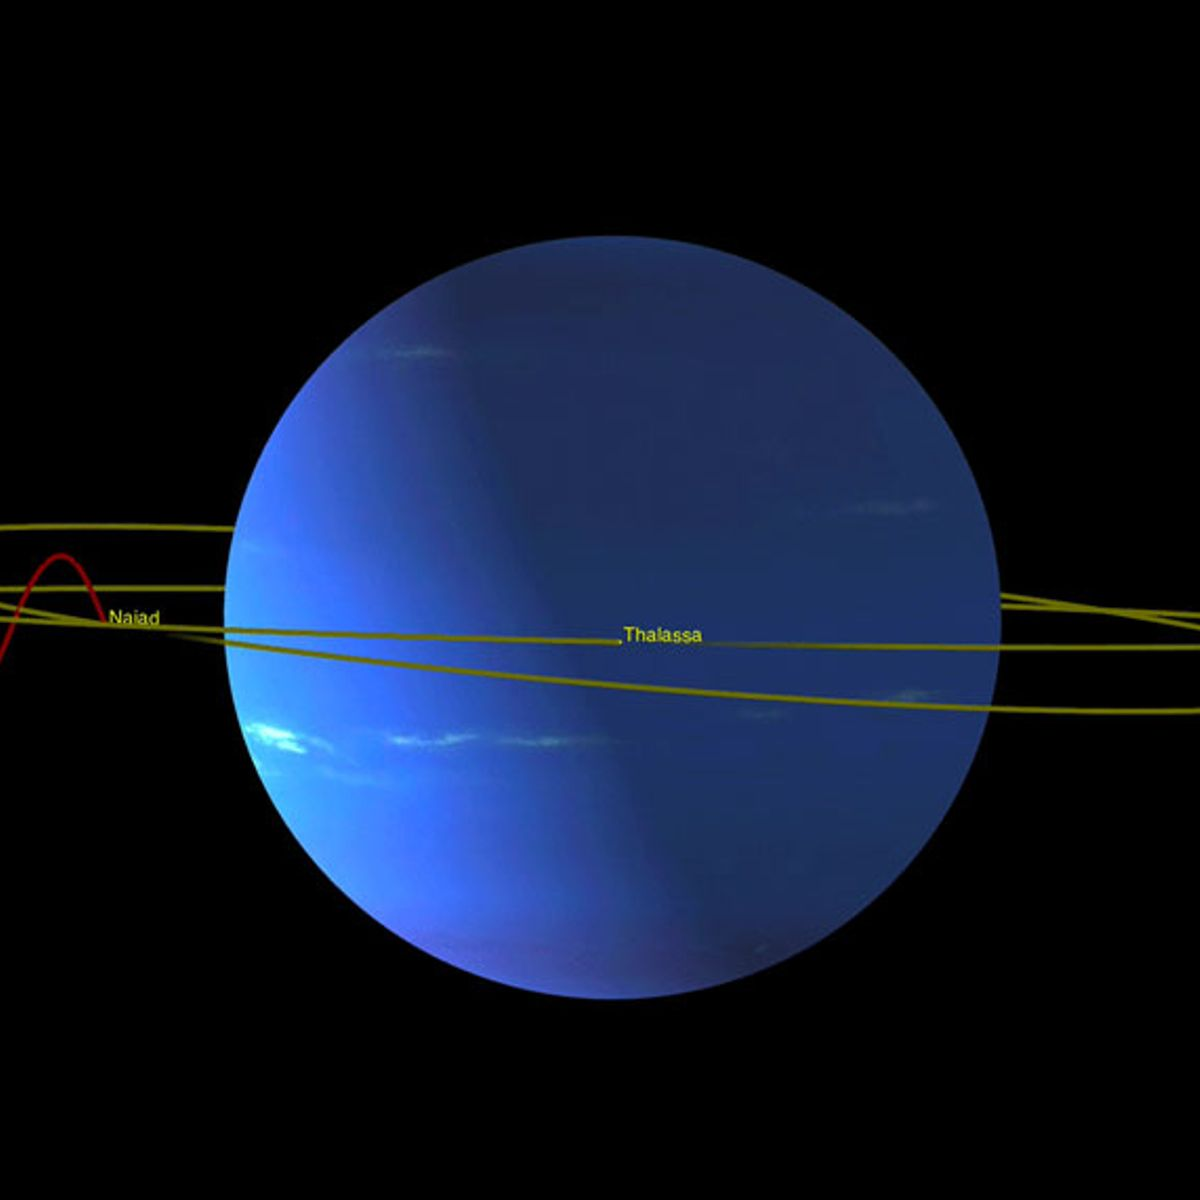 Neptune's moons tiptoe around each other to avoid collision